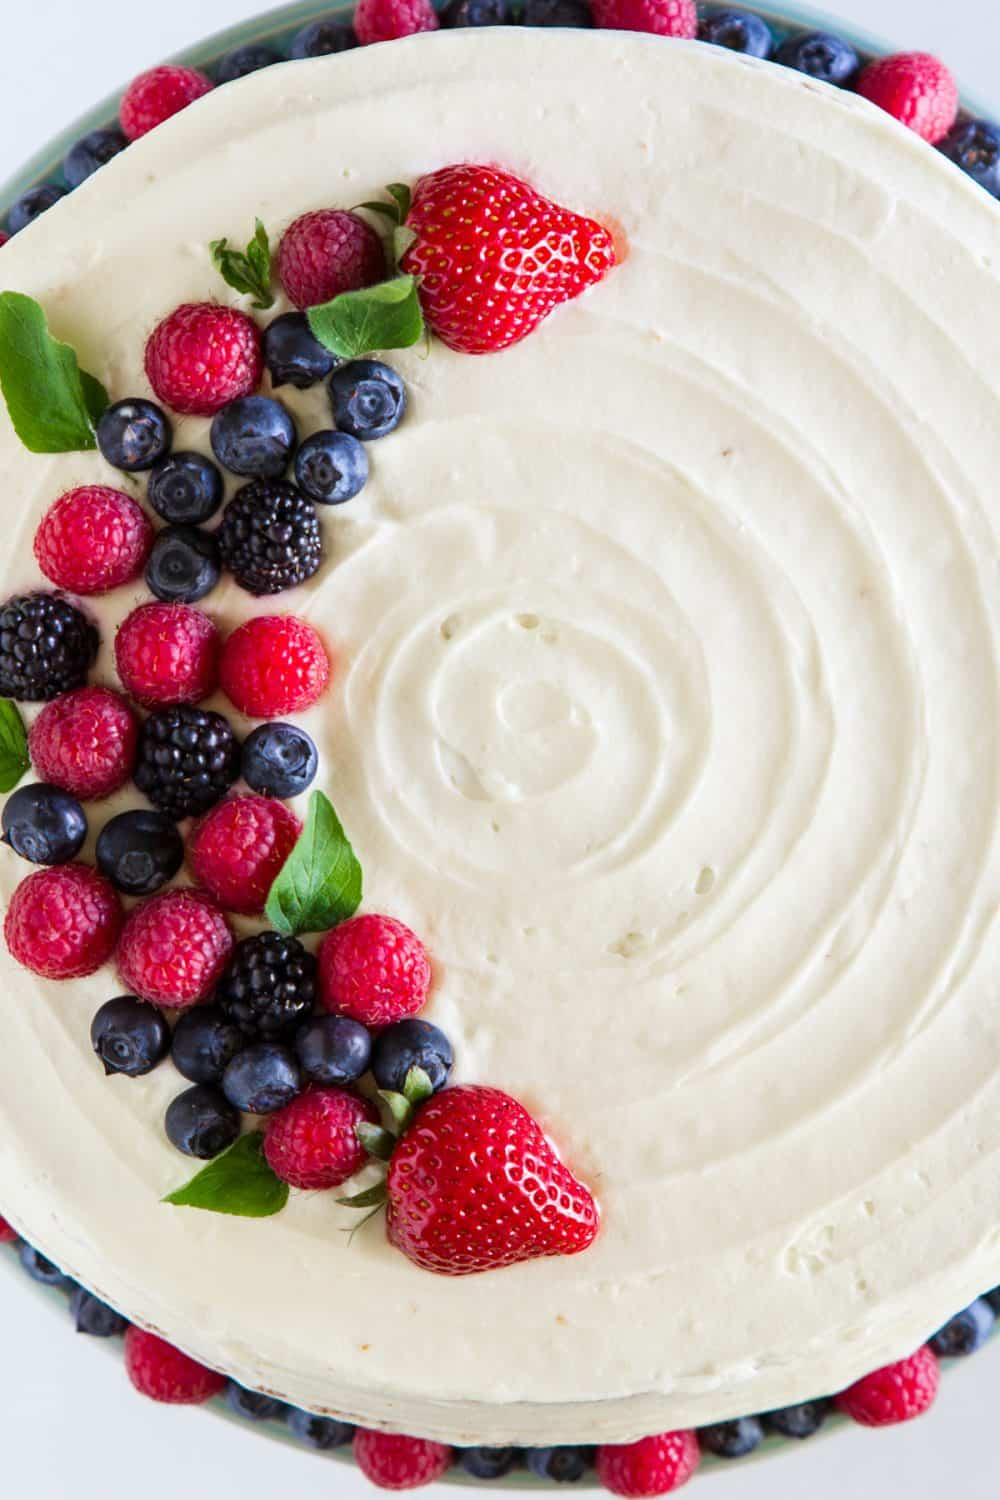 white Chantilly cake with berries on top